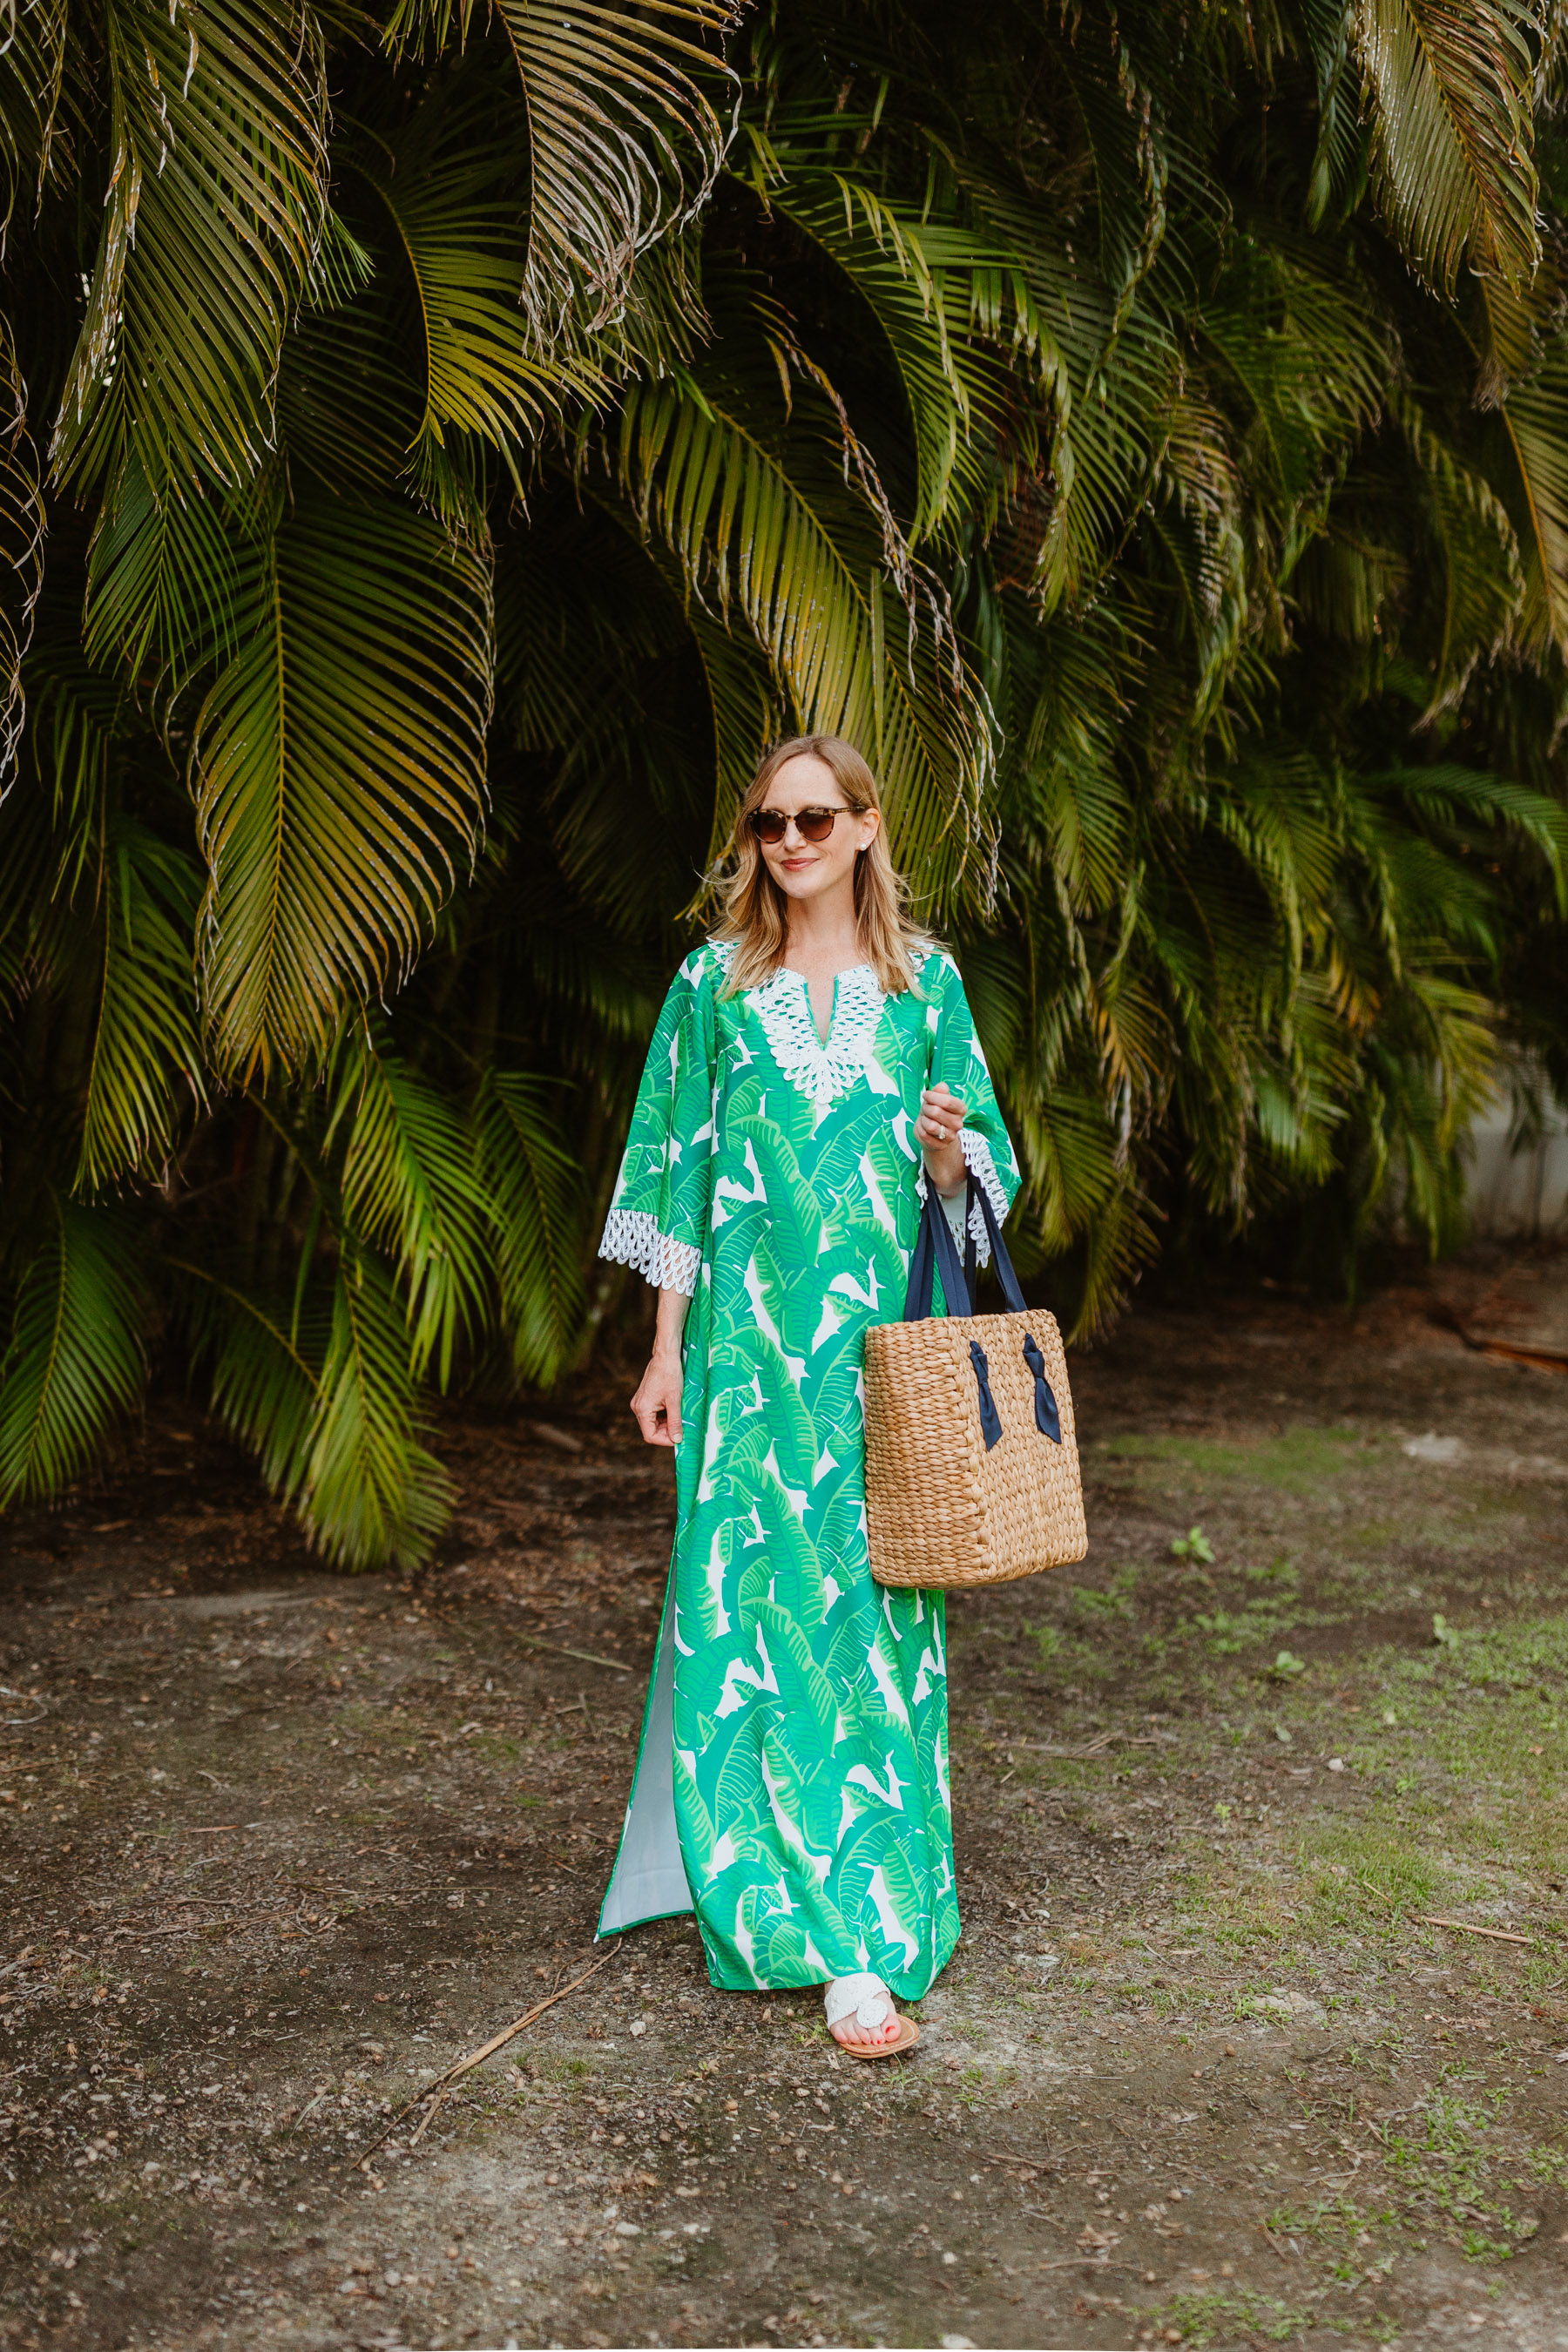 Kelly's outfit: Sail to Sable Banana Leaf Palm Dress / Jack Rogers / Pamela Munson Woven Tote